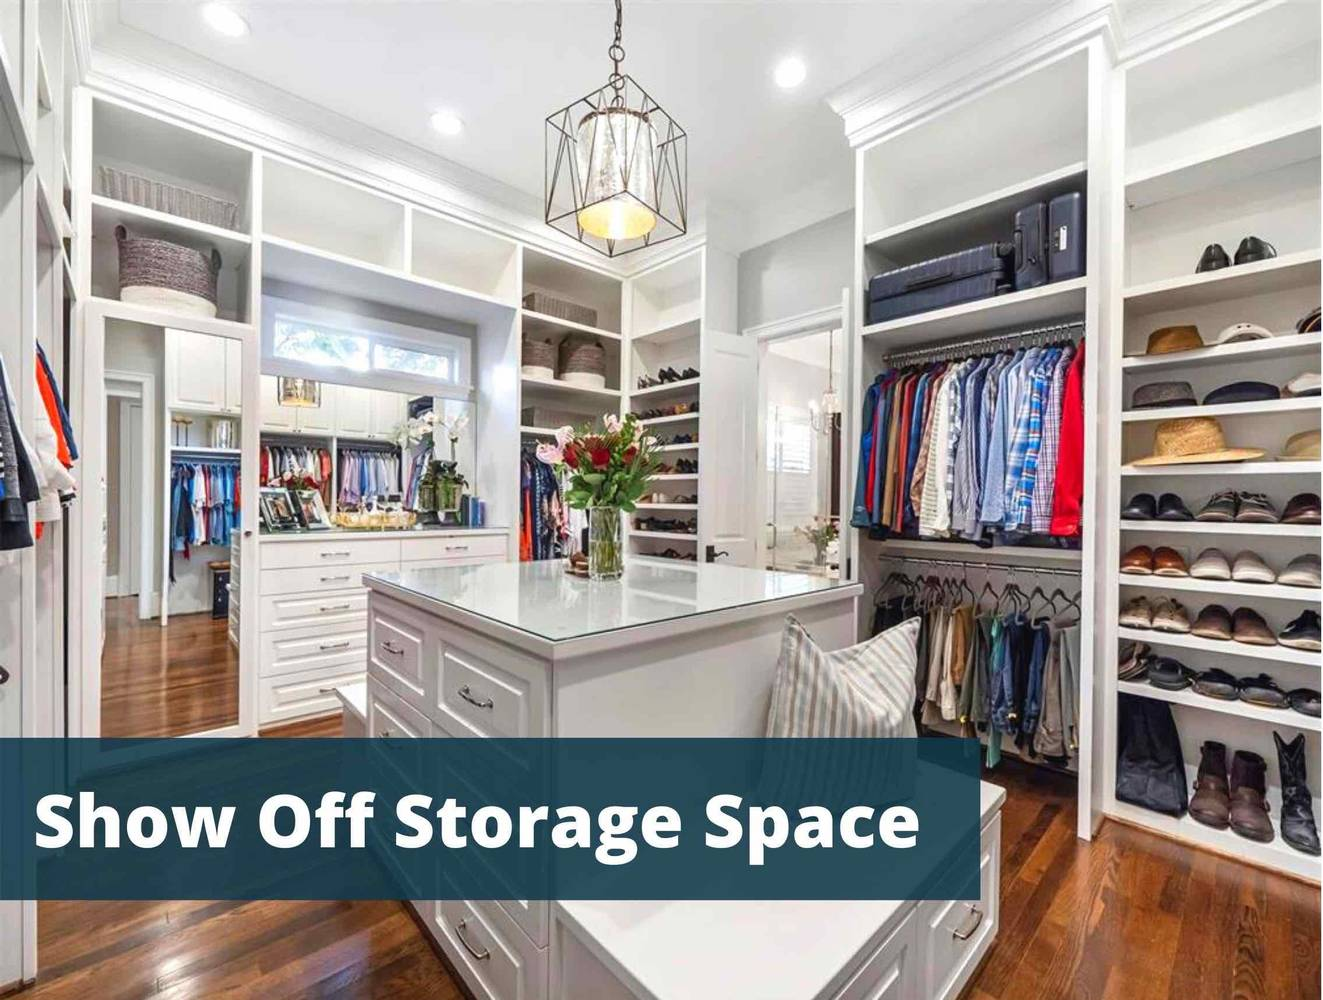 Making An Impact: Show Off Storage Space